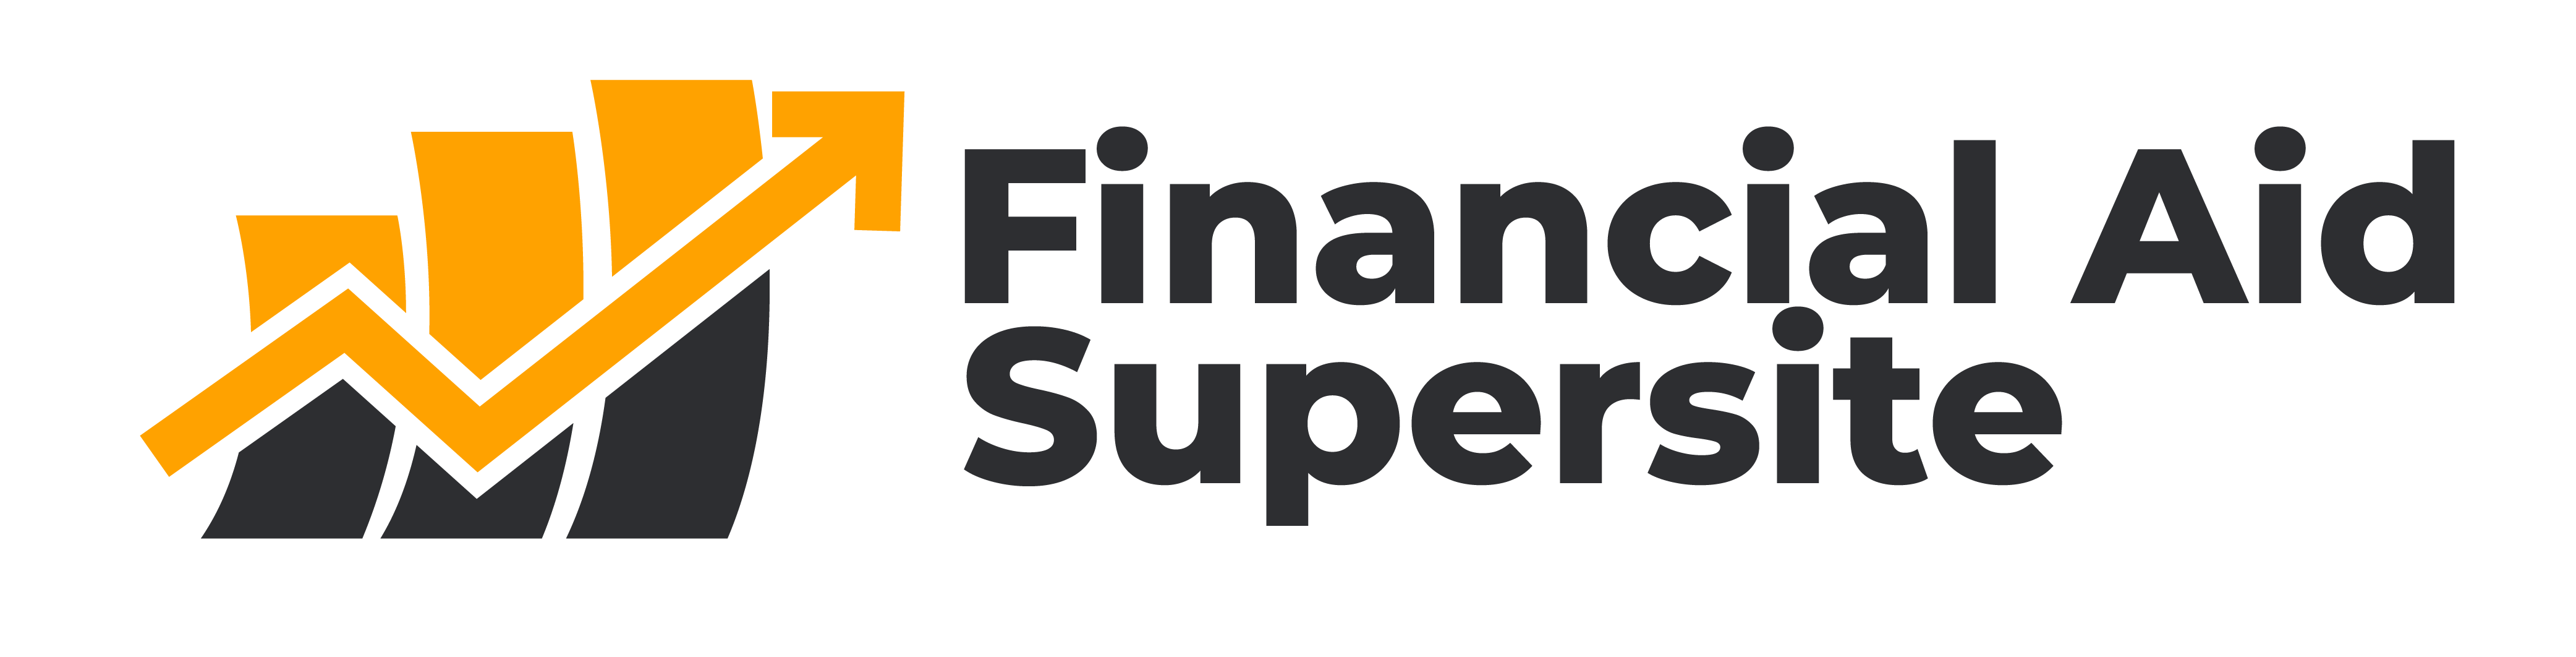 Financial Aid Super Site